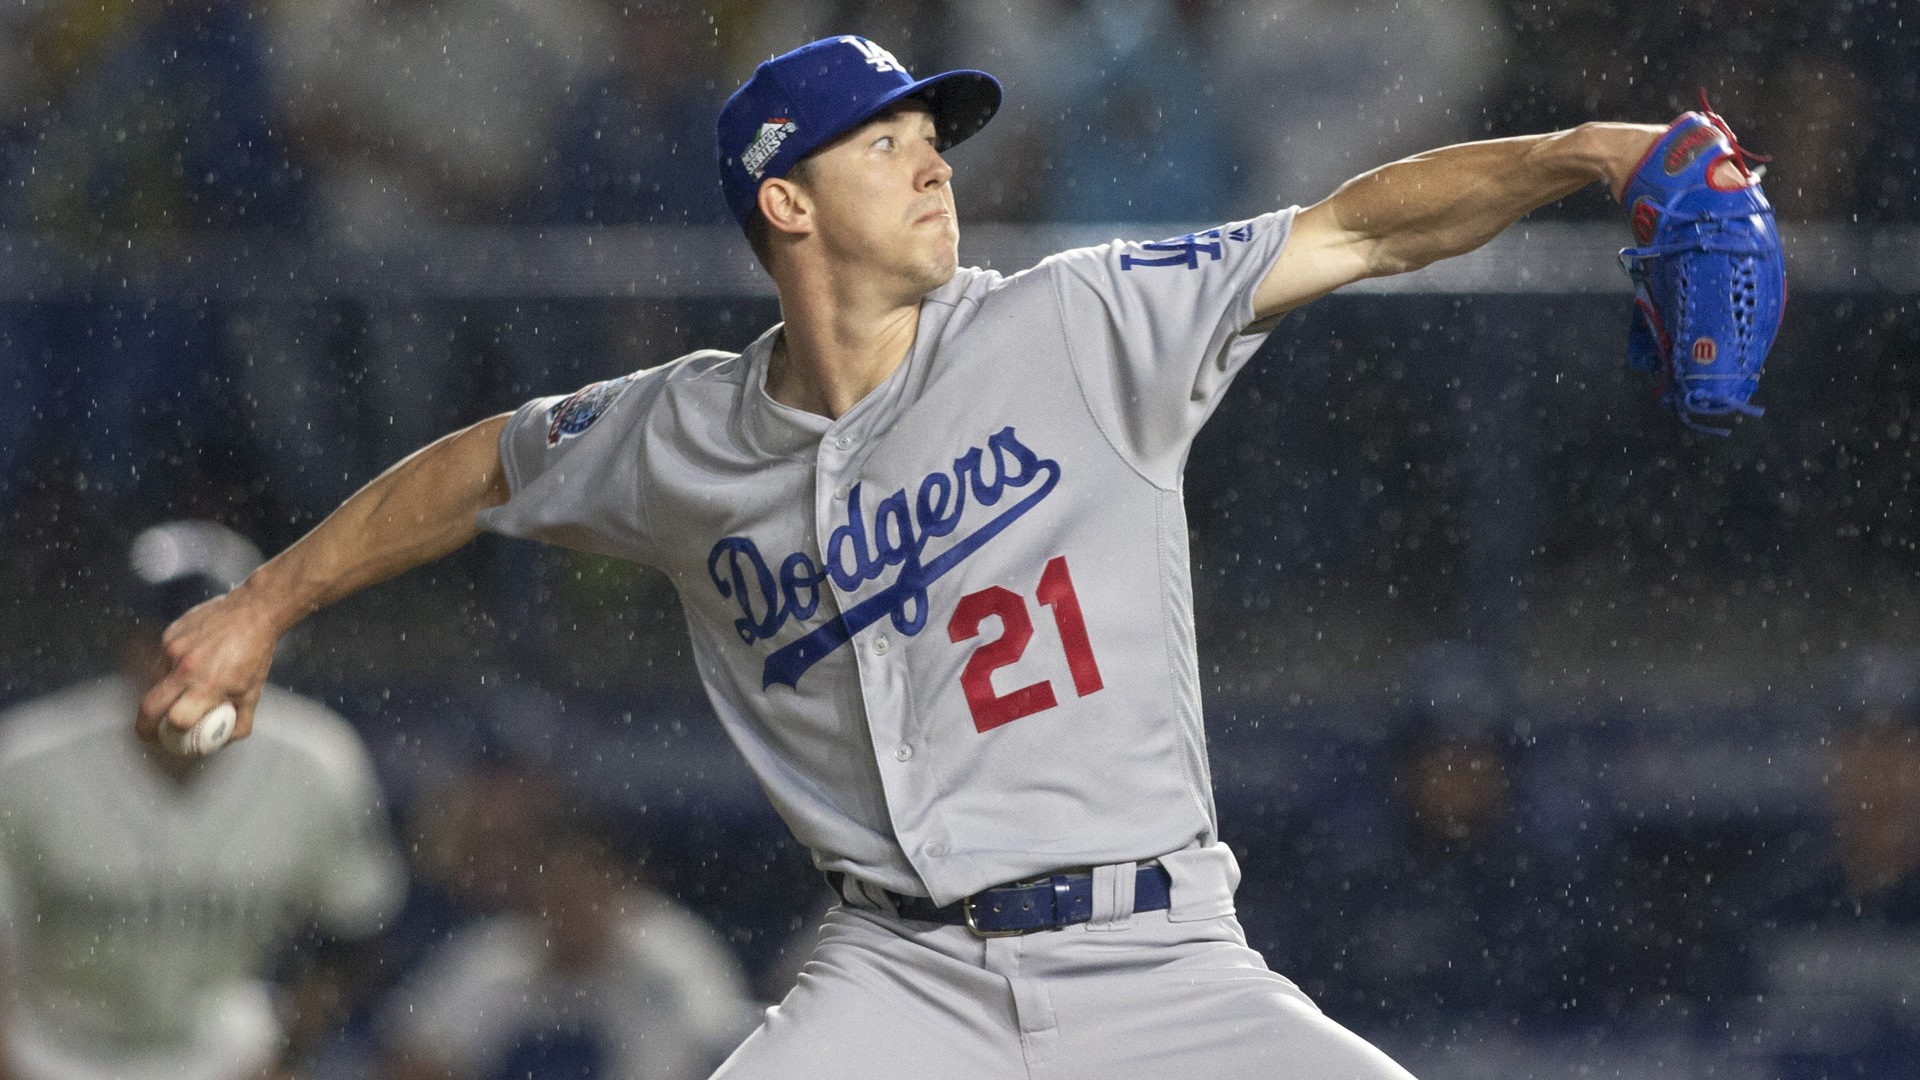 Dodgers' Buehler fuels combined no-hitter against Padres